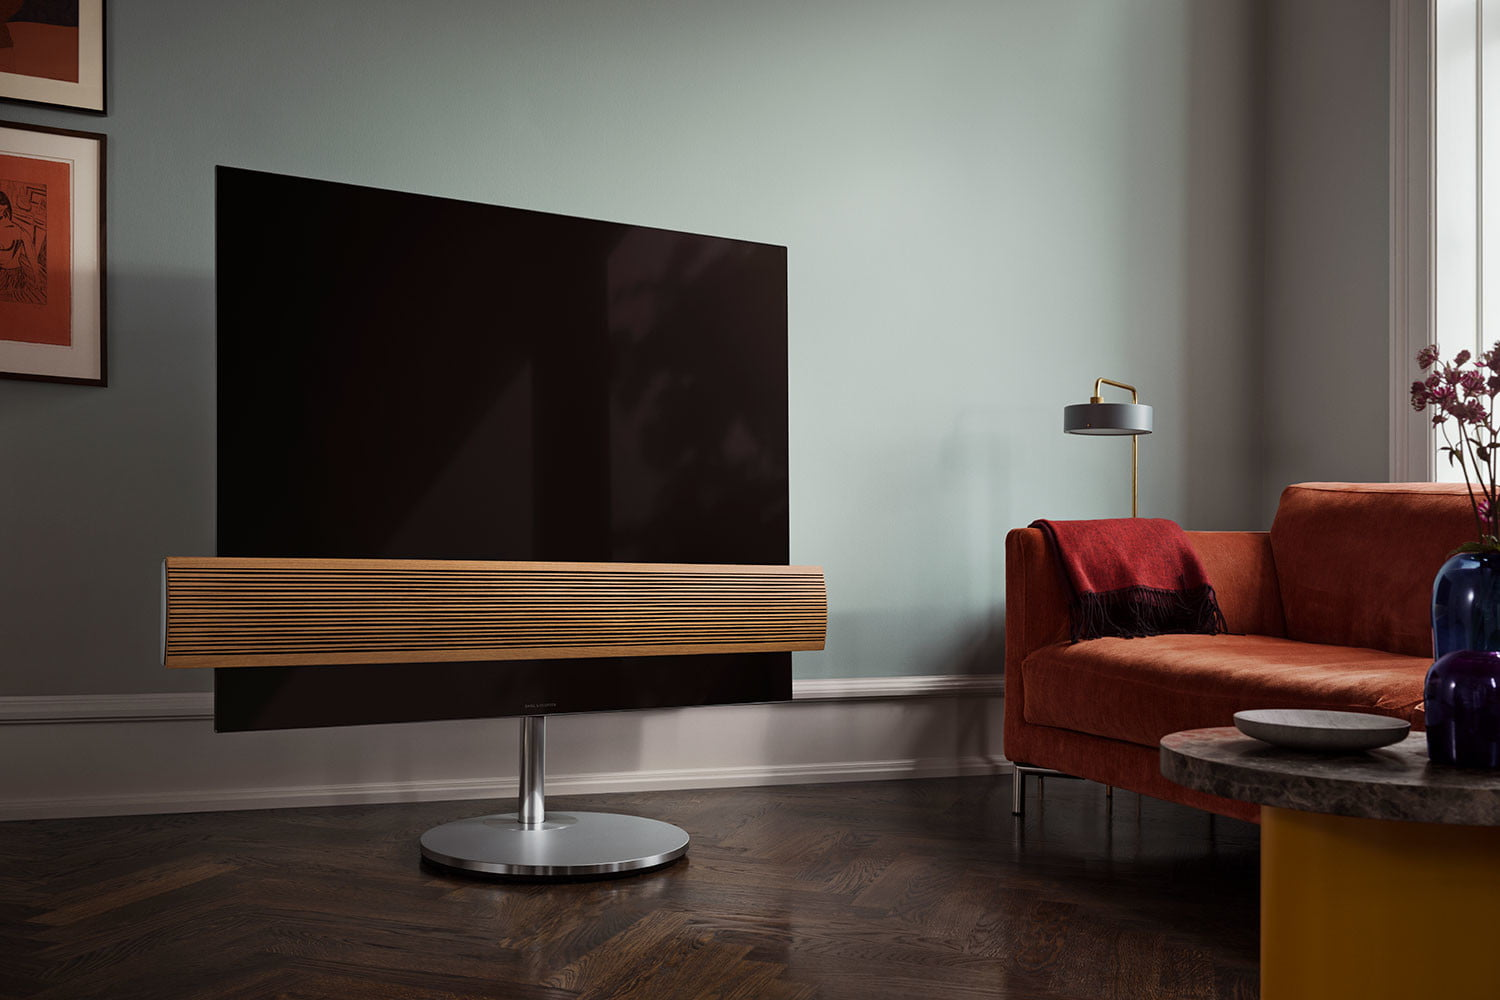 bang-olufsen-beovision-eclipse-wood-edition-2-1500x1000